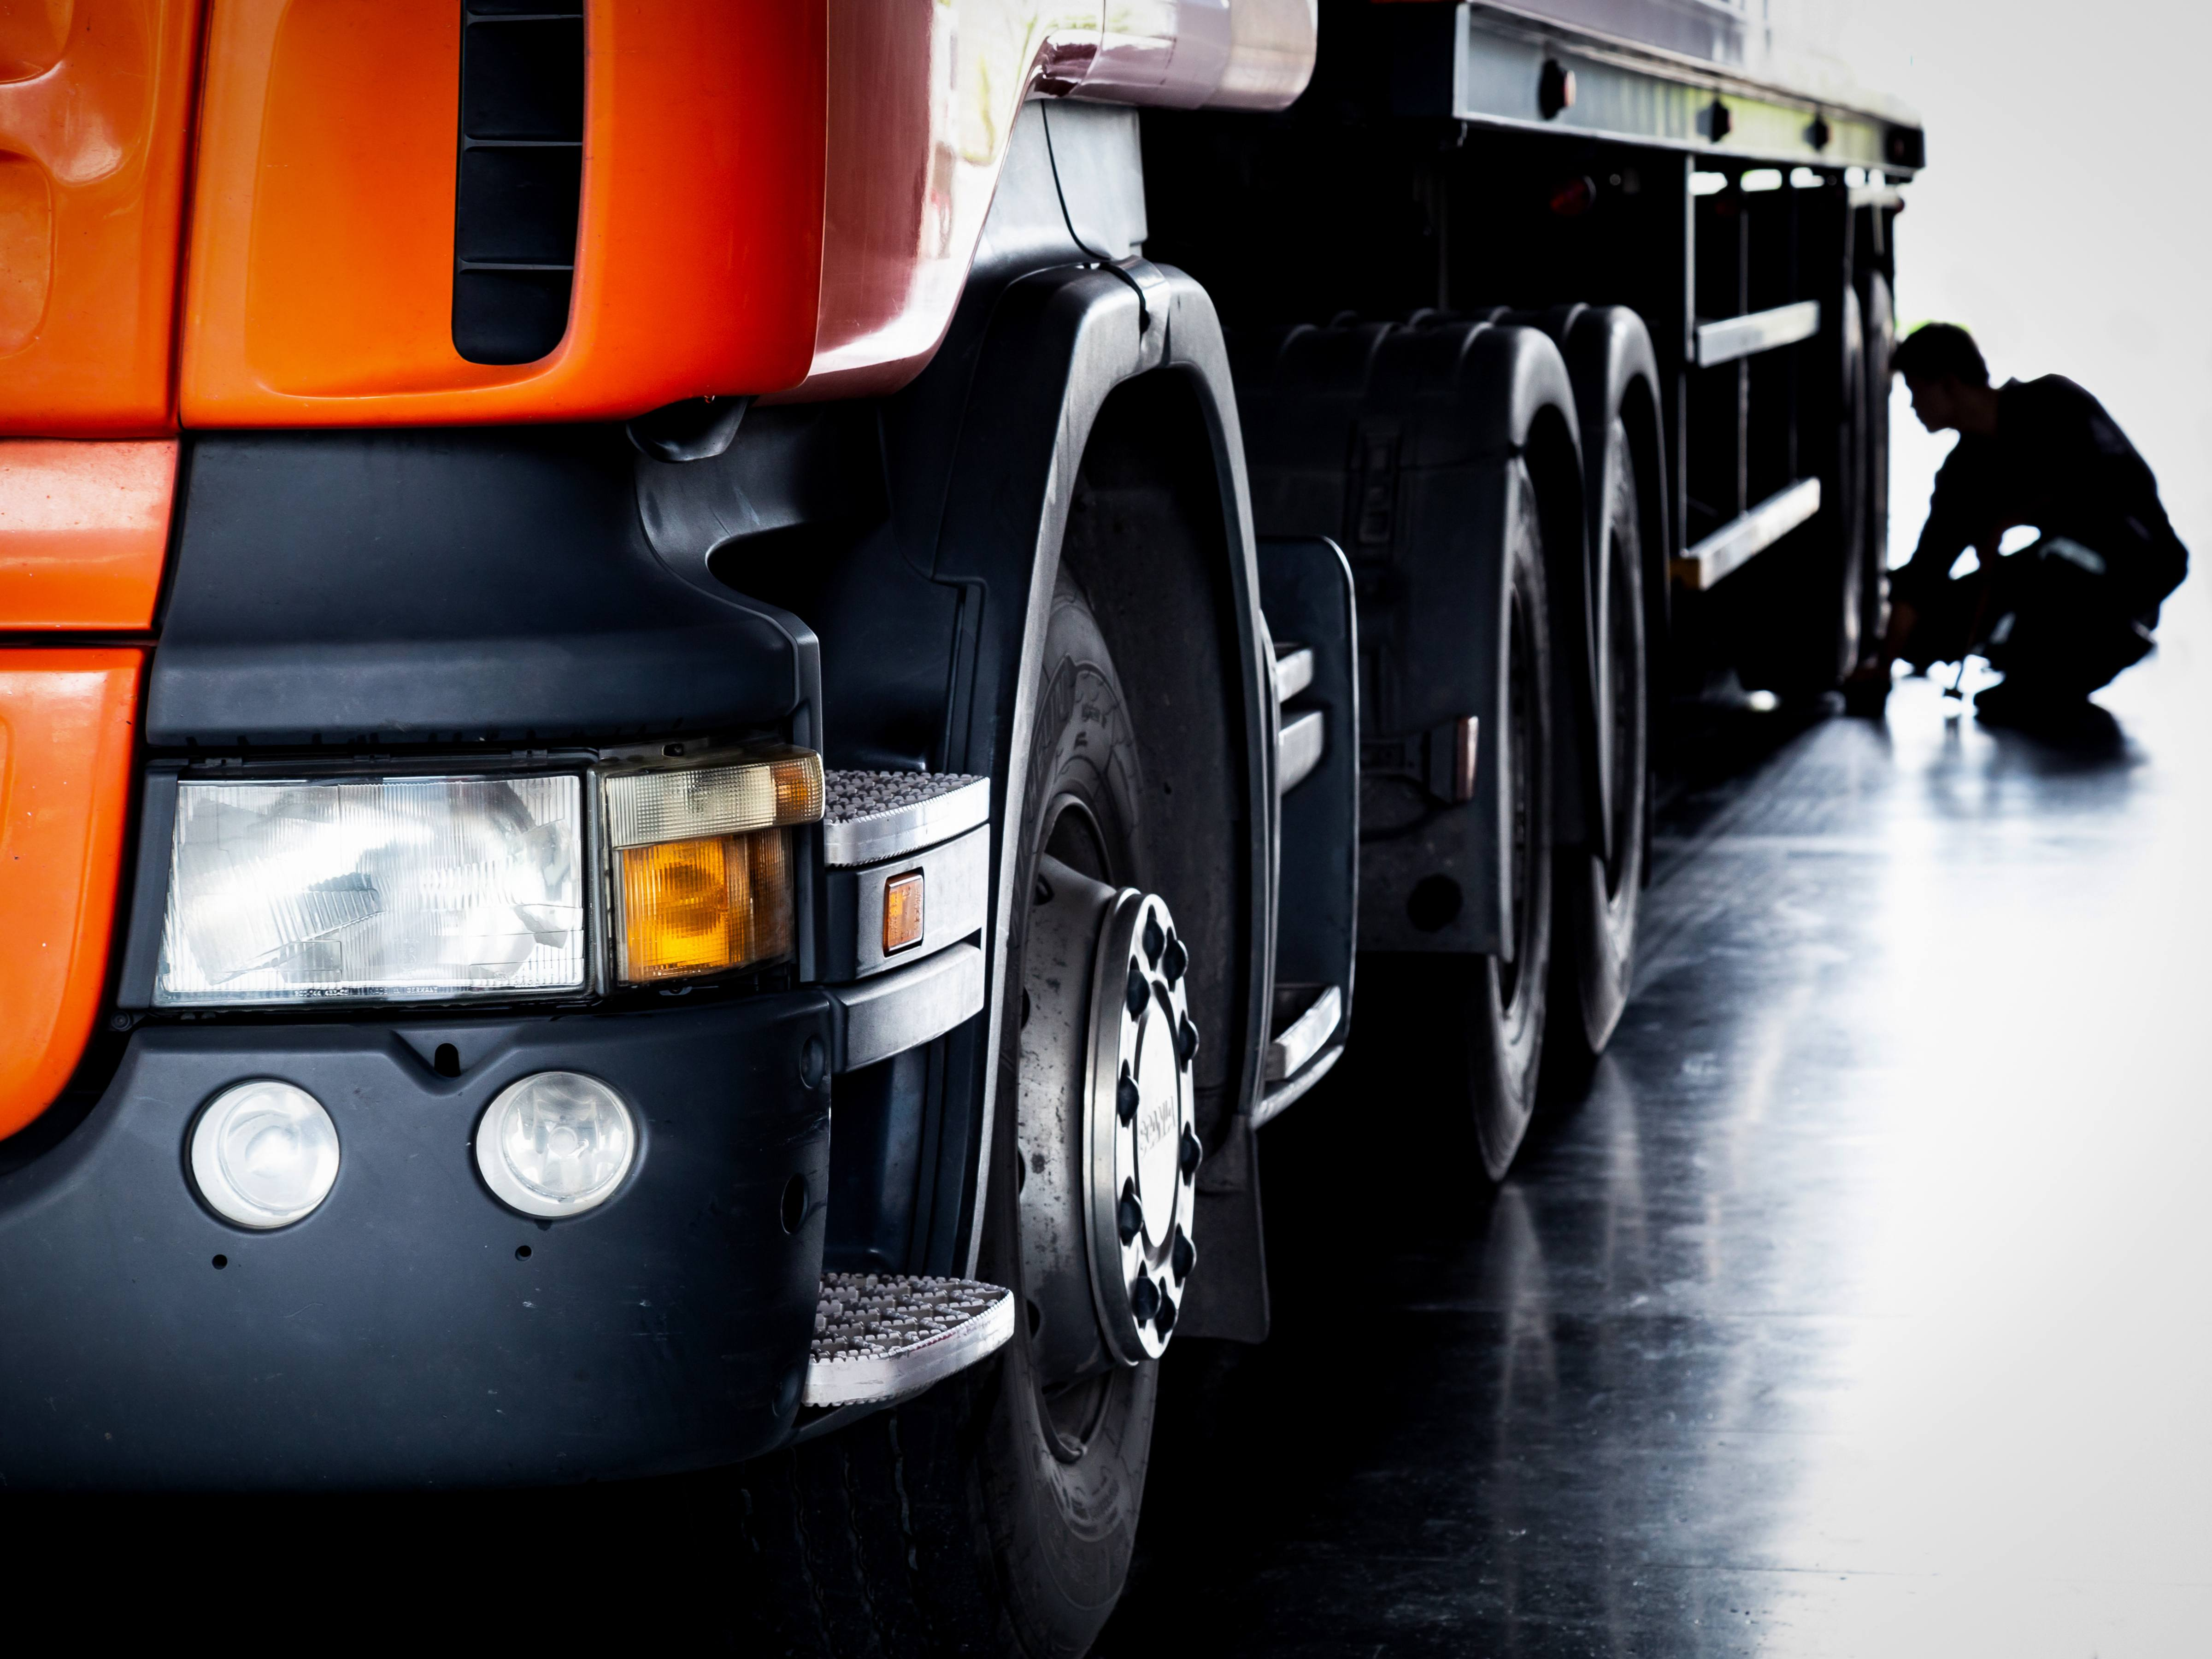 When is the search of a heavy vehicle lawful?